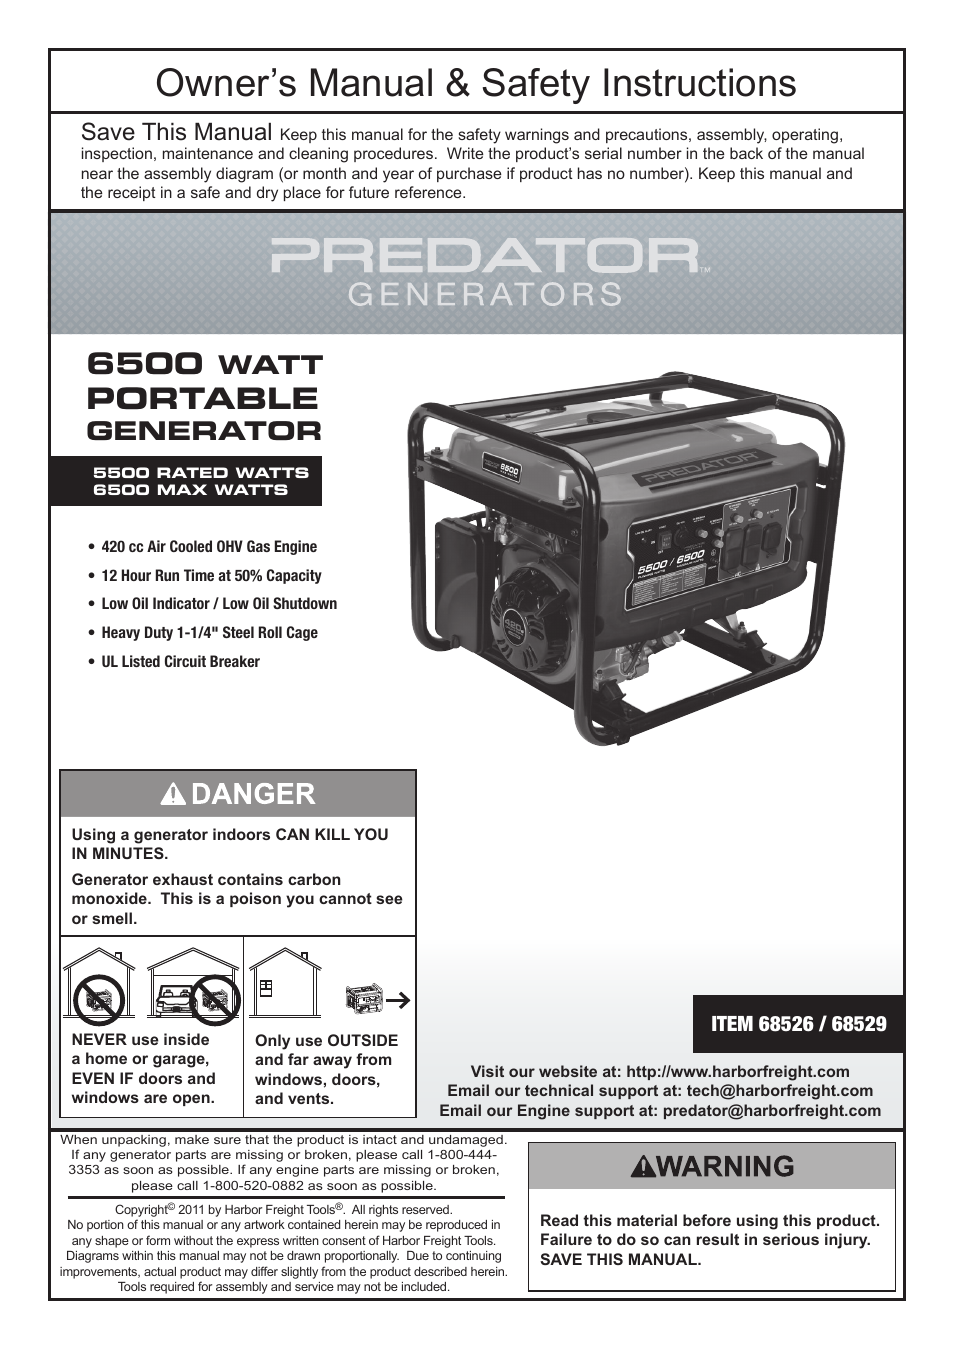 harbor freight tools predator 6500 watt portable generator 68526 page1 harbor freight tools predator 6500 watt portable generator 68526 predator 420cc engine wiring diagram at n-0.co